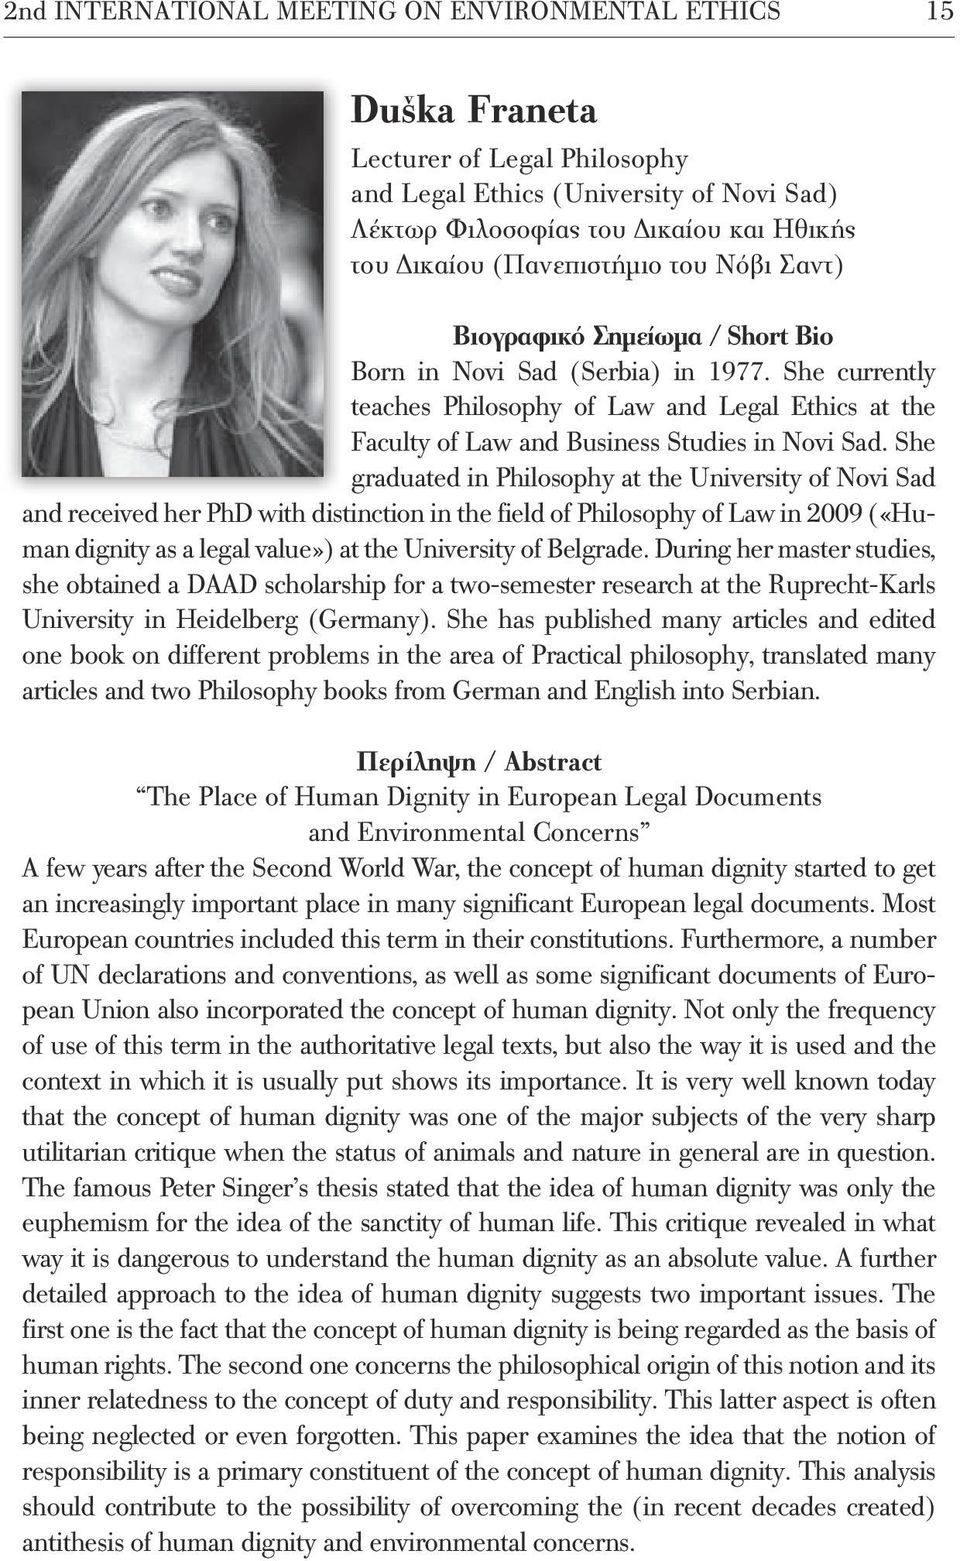 She currently teaches Philosophy of Law and Legal Ethics at the Faculty of Law and Business Studies in Novi Sad.